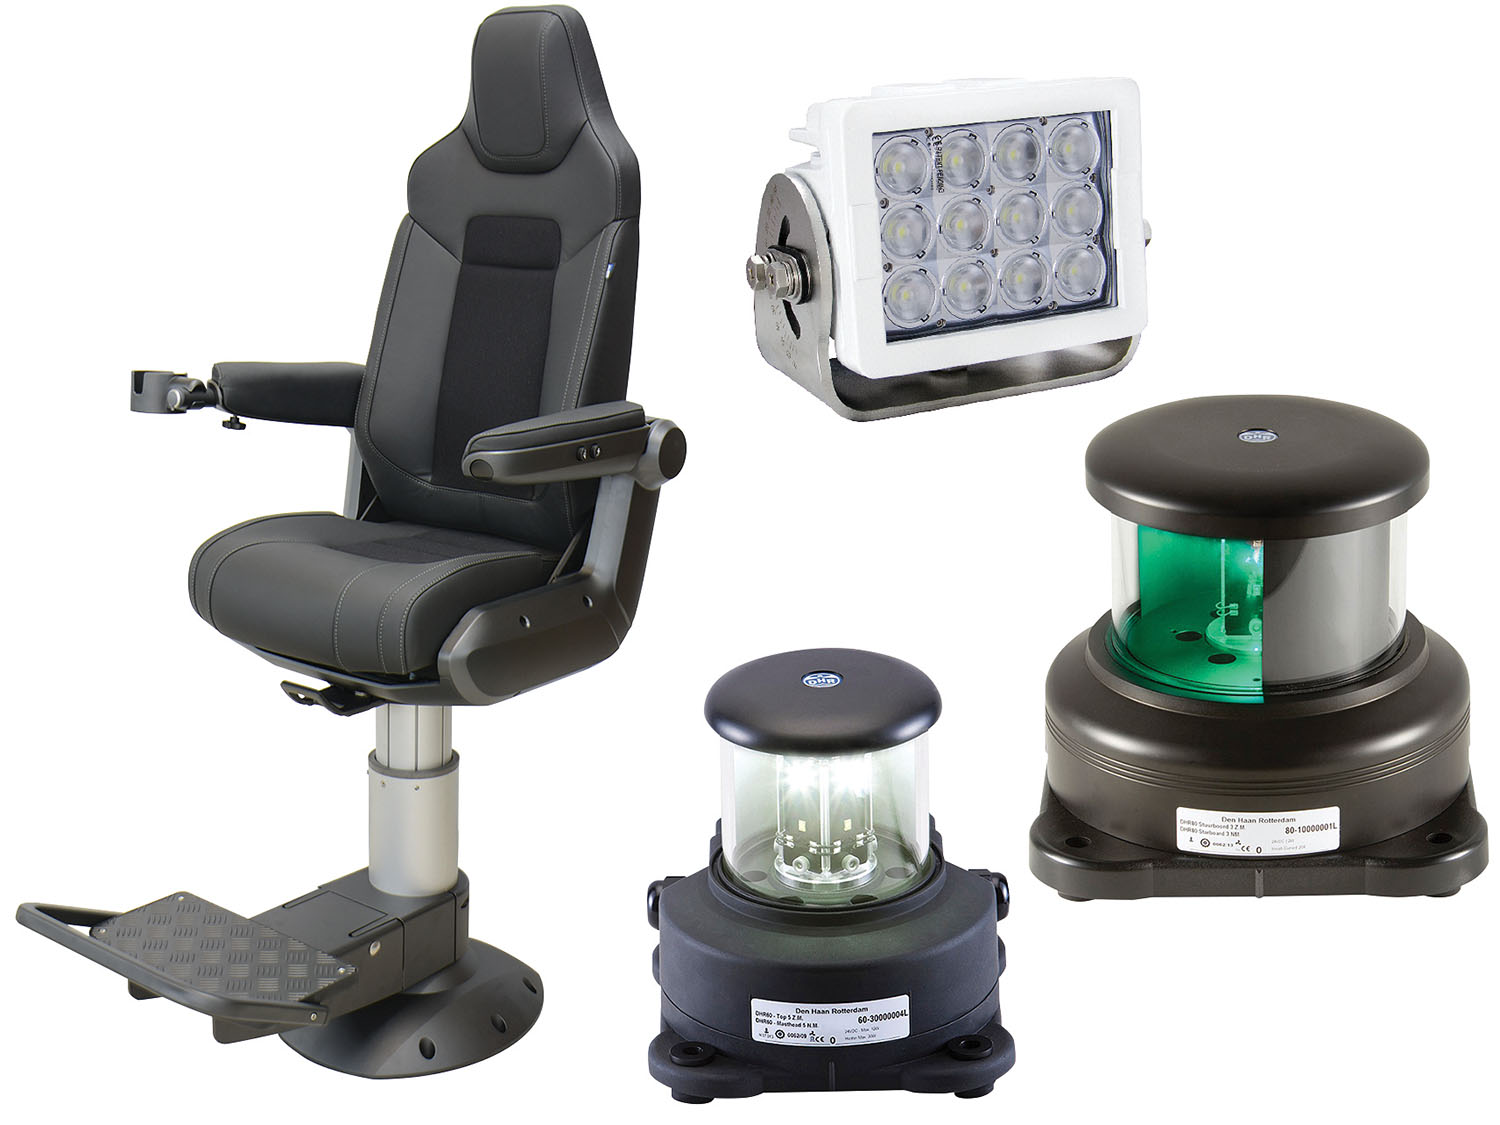 Imtra supplies a variety of products, from deck lights to pilot chairs.